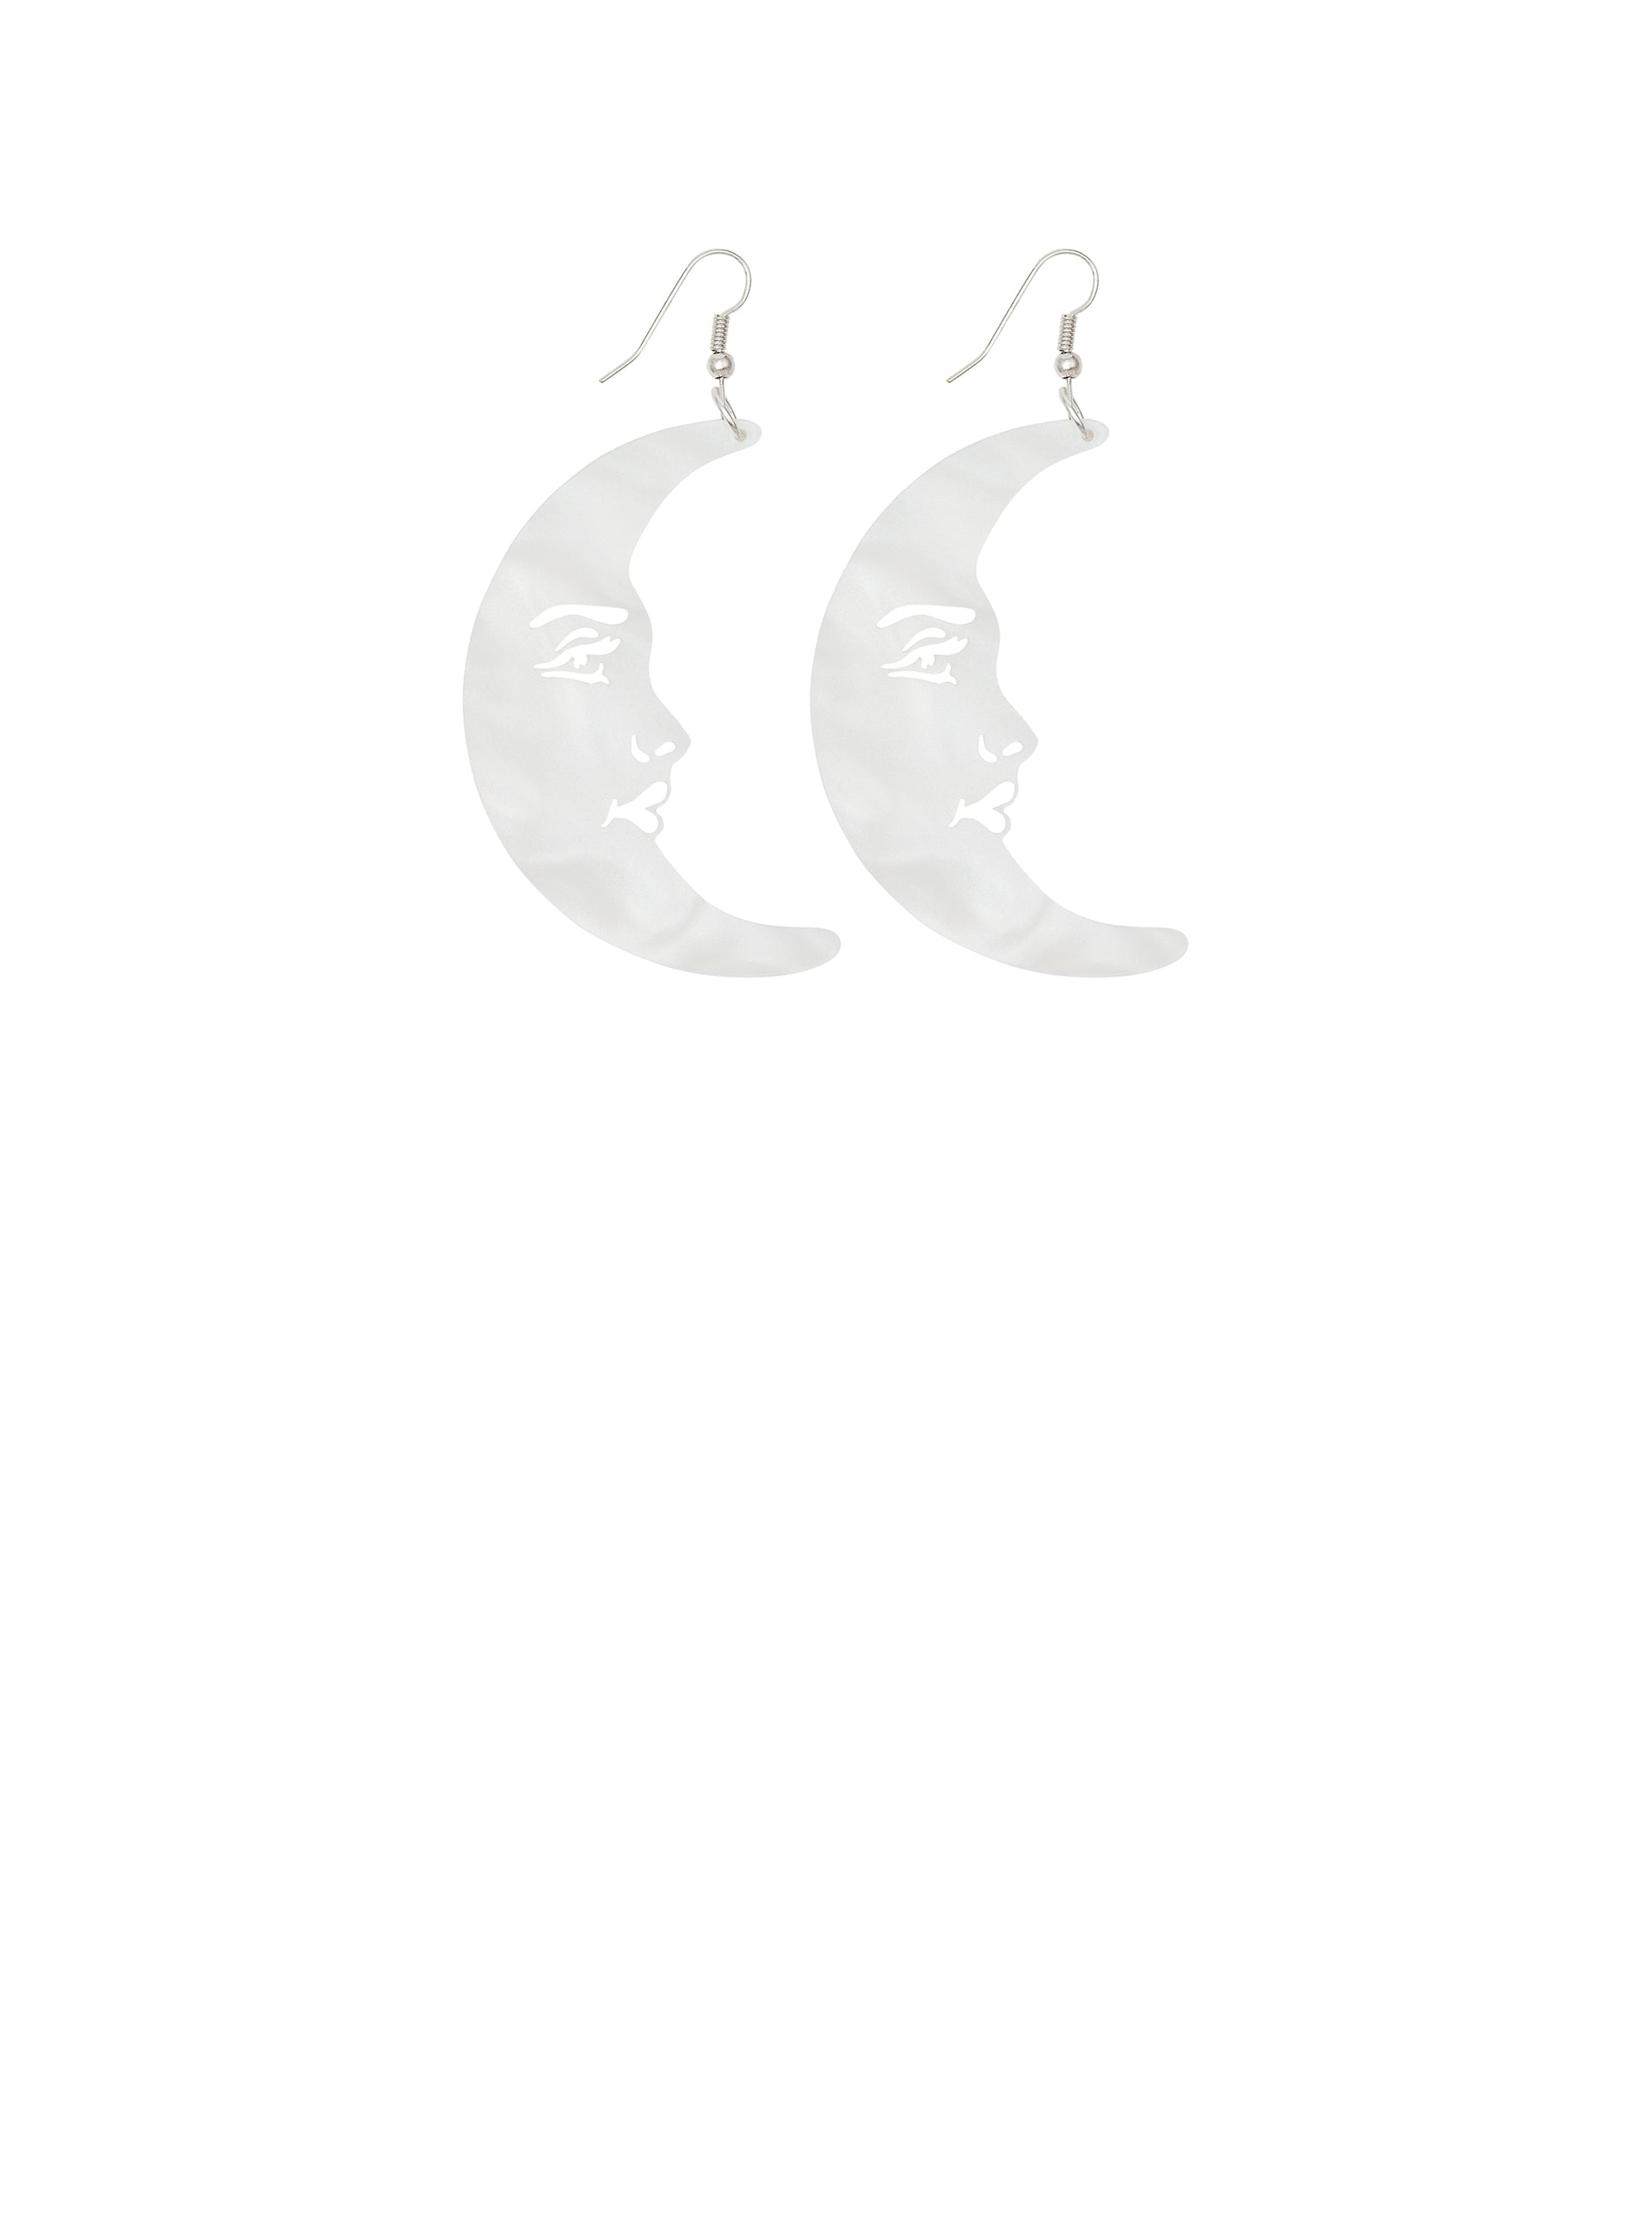 La Luna Moon Earrings - Pearl